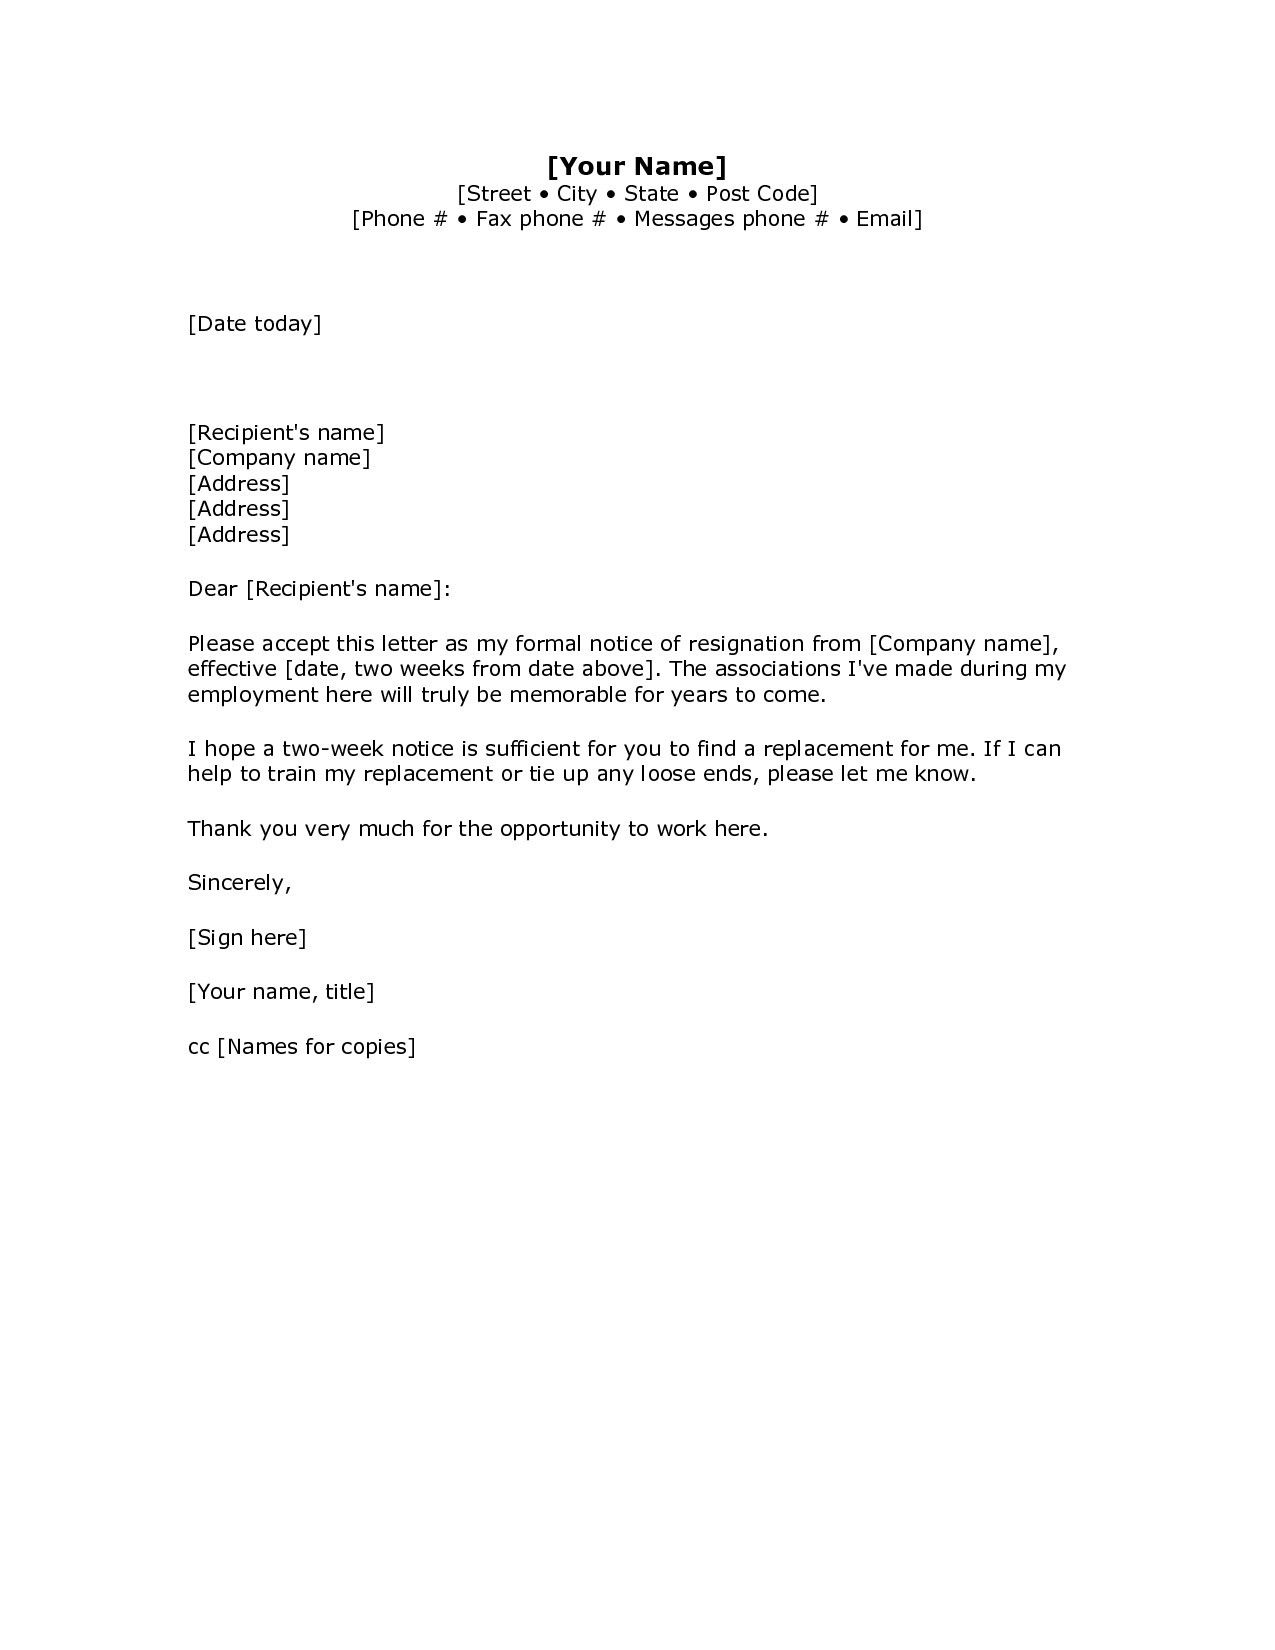 Download New Letter When Leaving A Job At Https Gprime Us Letter